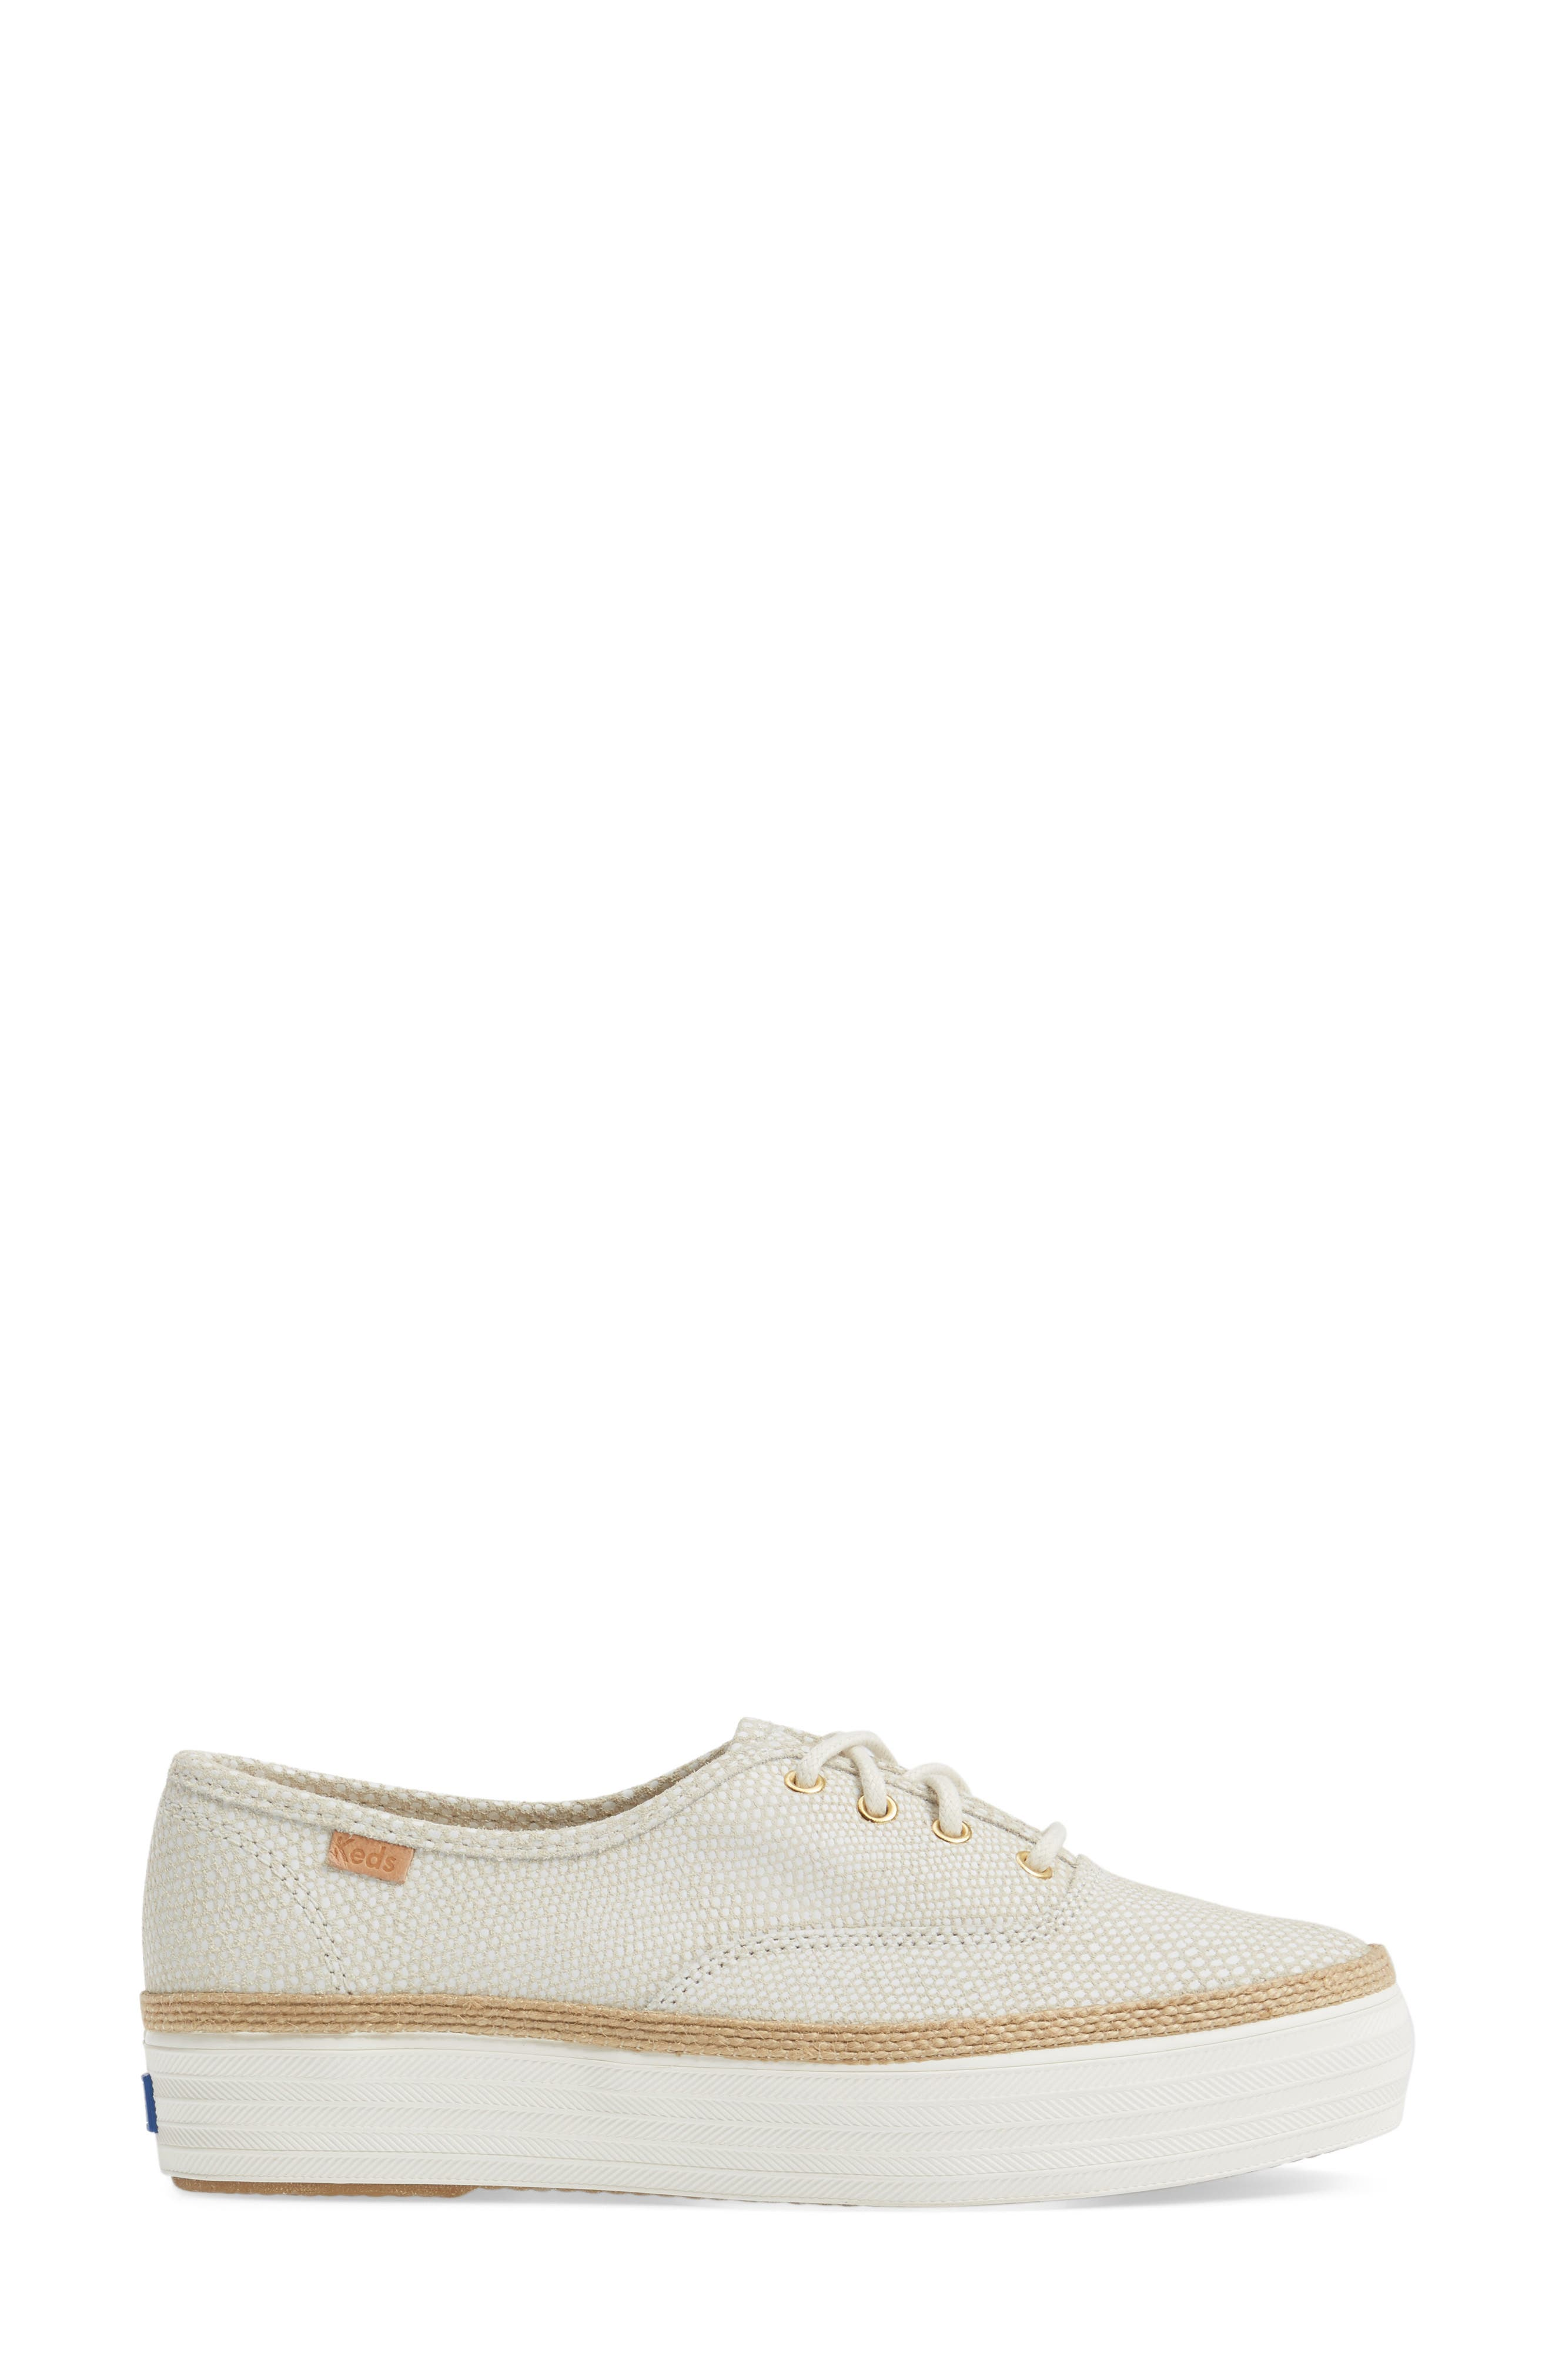 Triple Deck Platform Sneaker,                             Alternate thumbnail 3, color,                             Cream